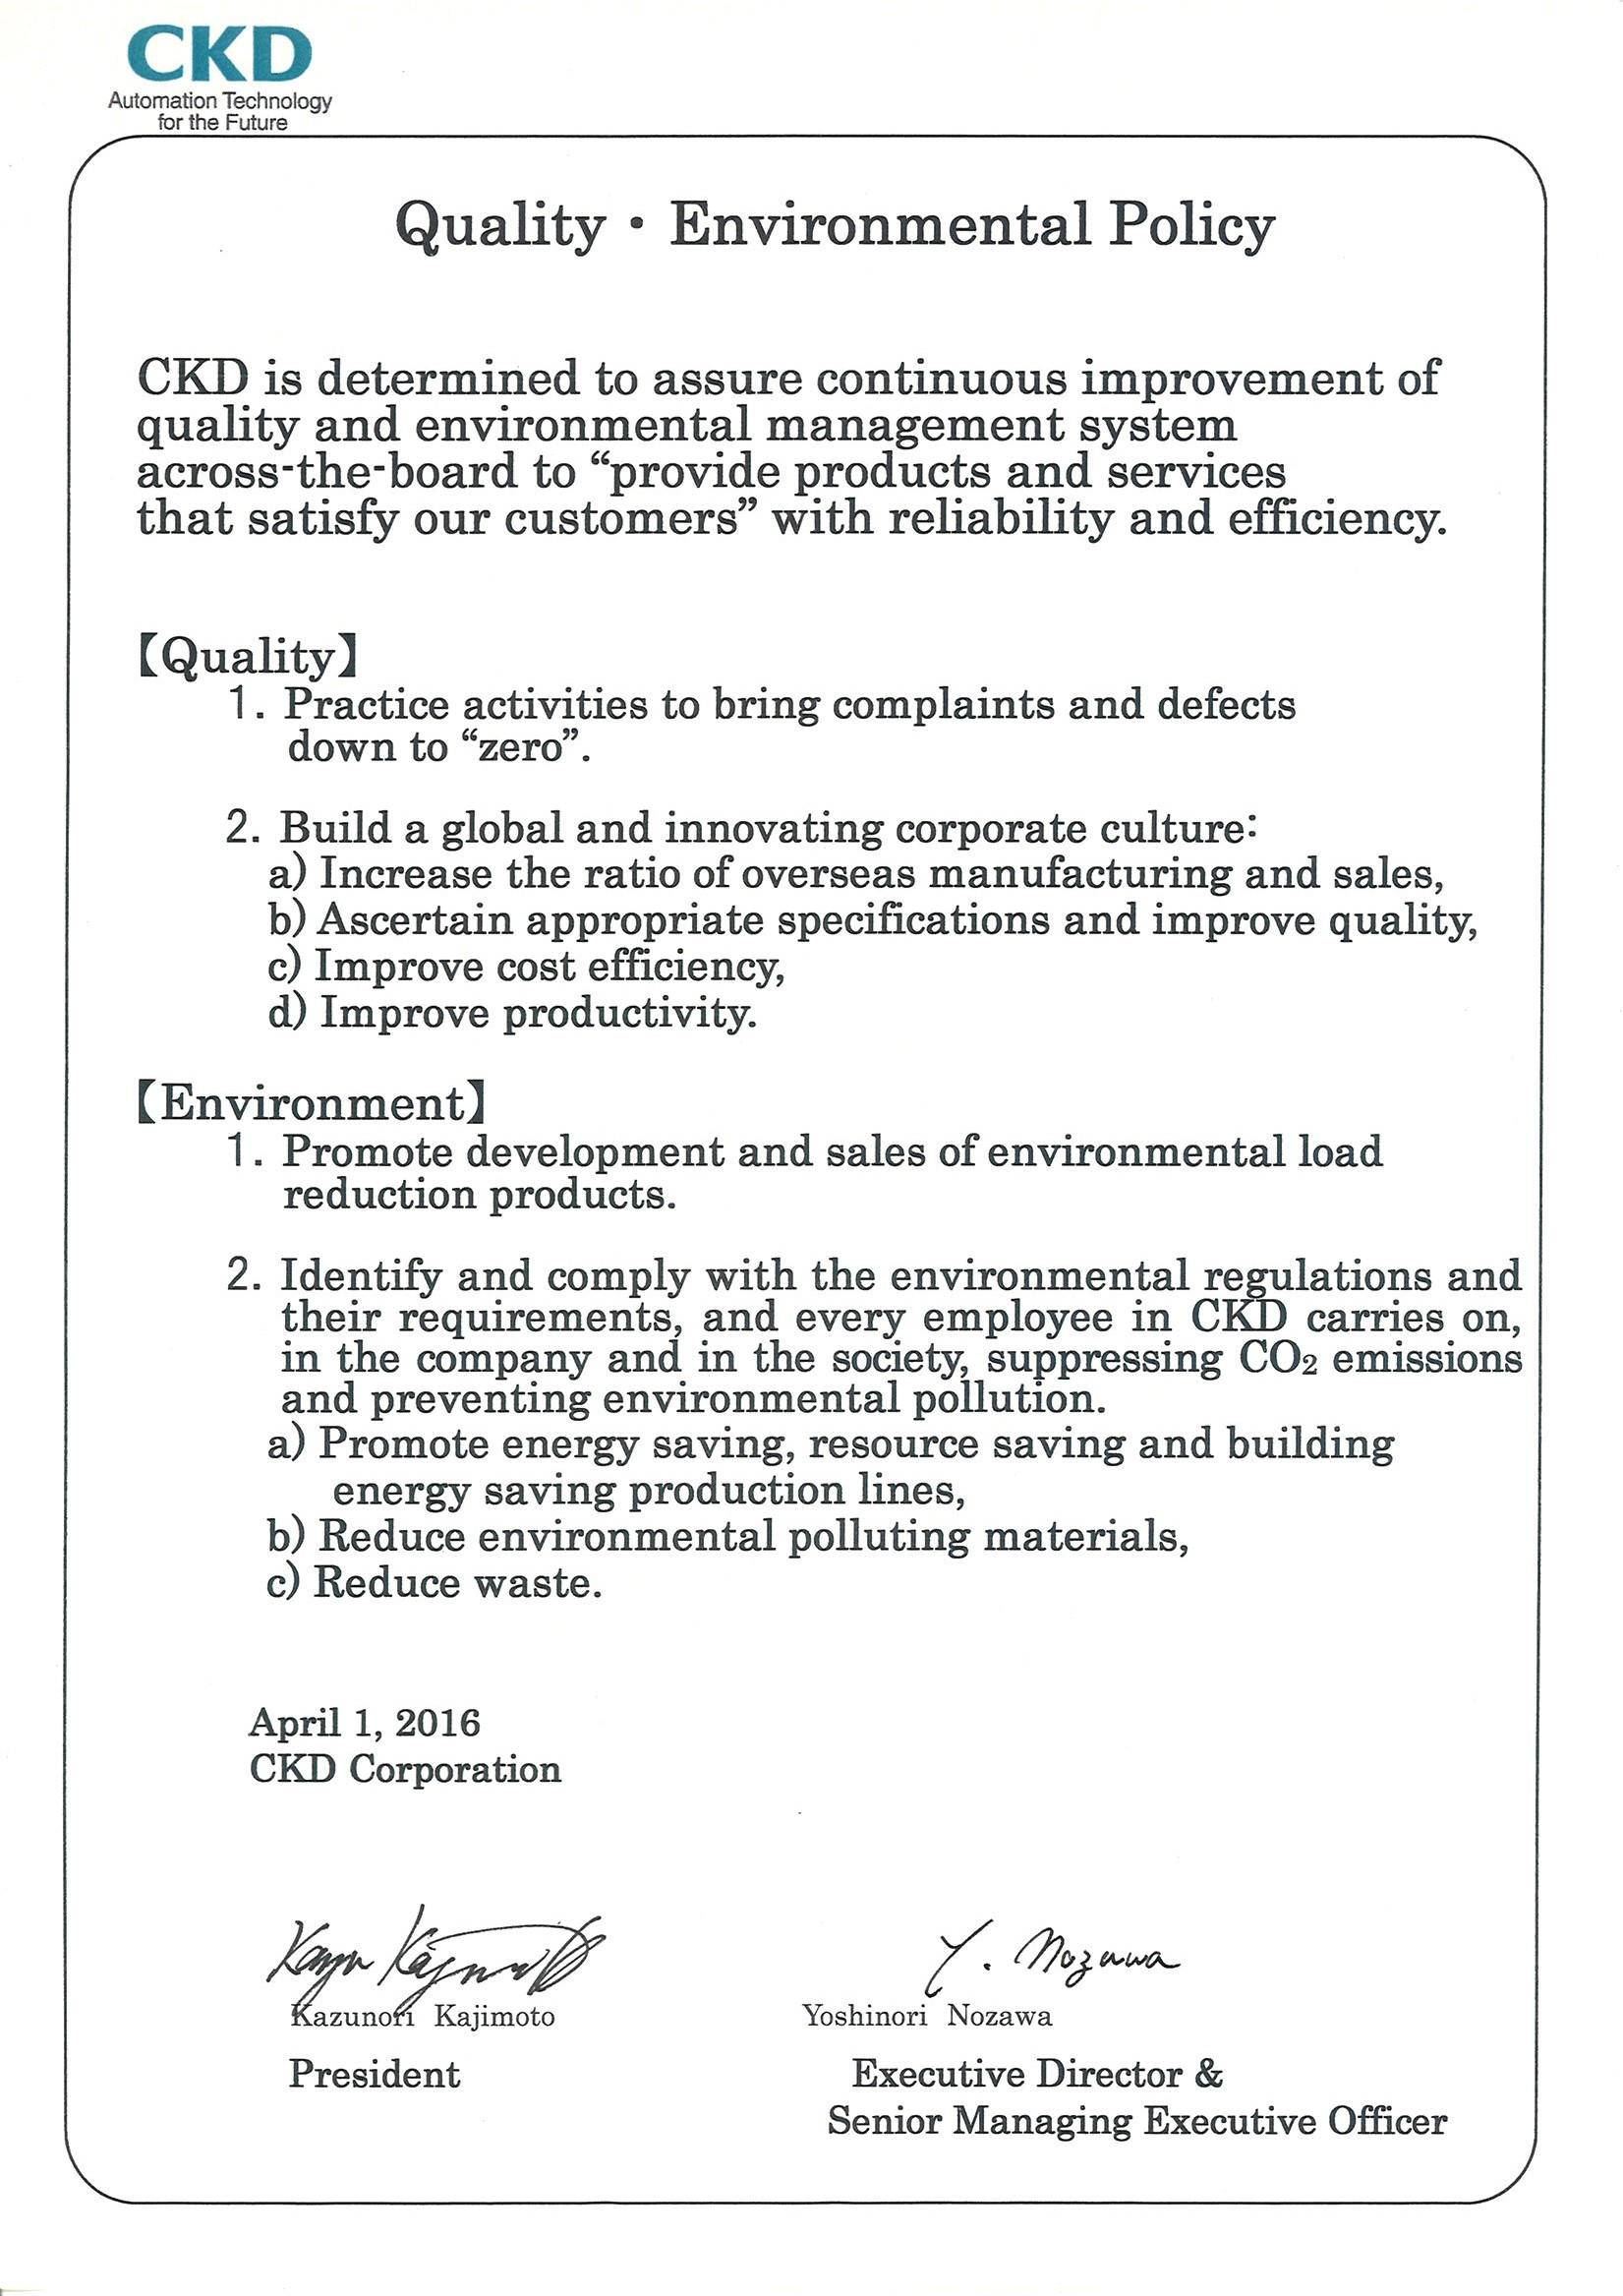 Quality-Environmental Policy